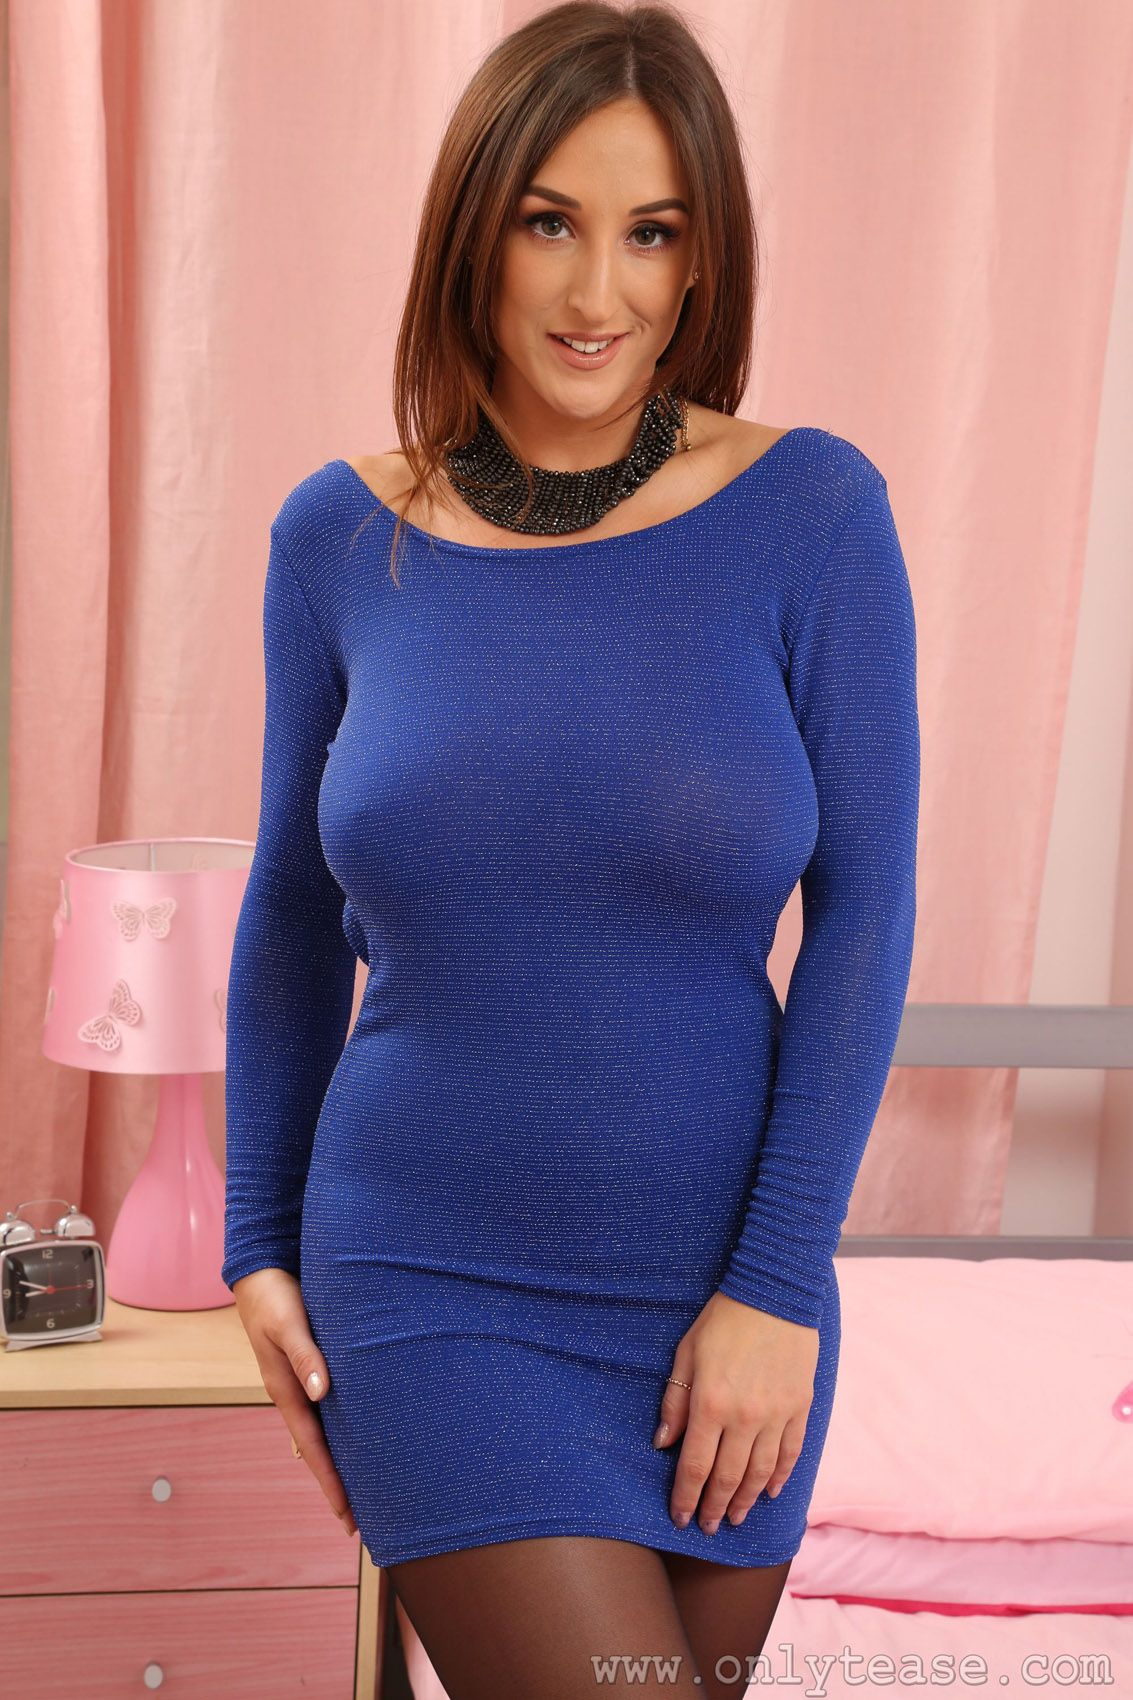 Pictures Stacey Poole nudes (36 images), Cleavage